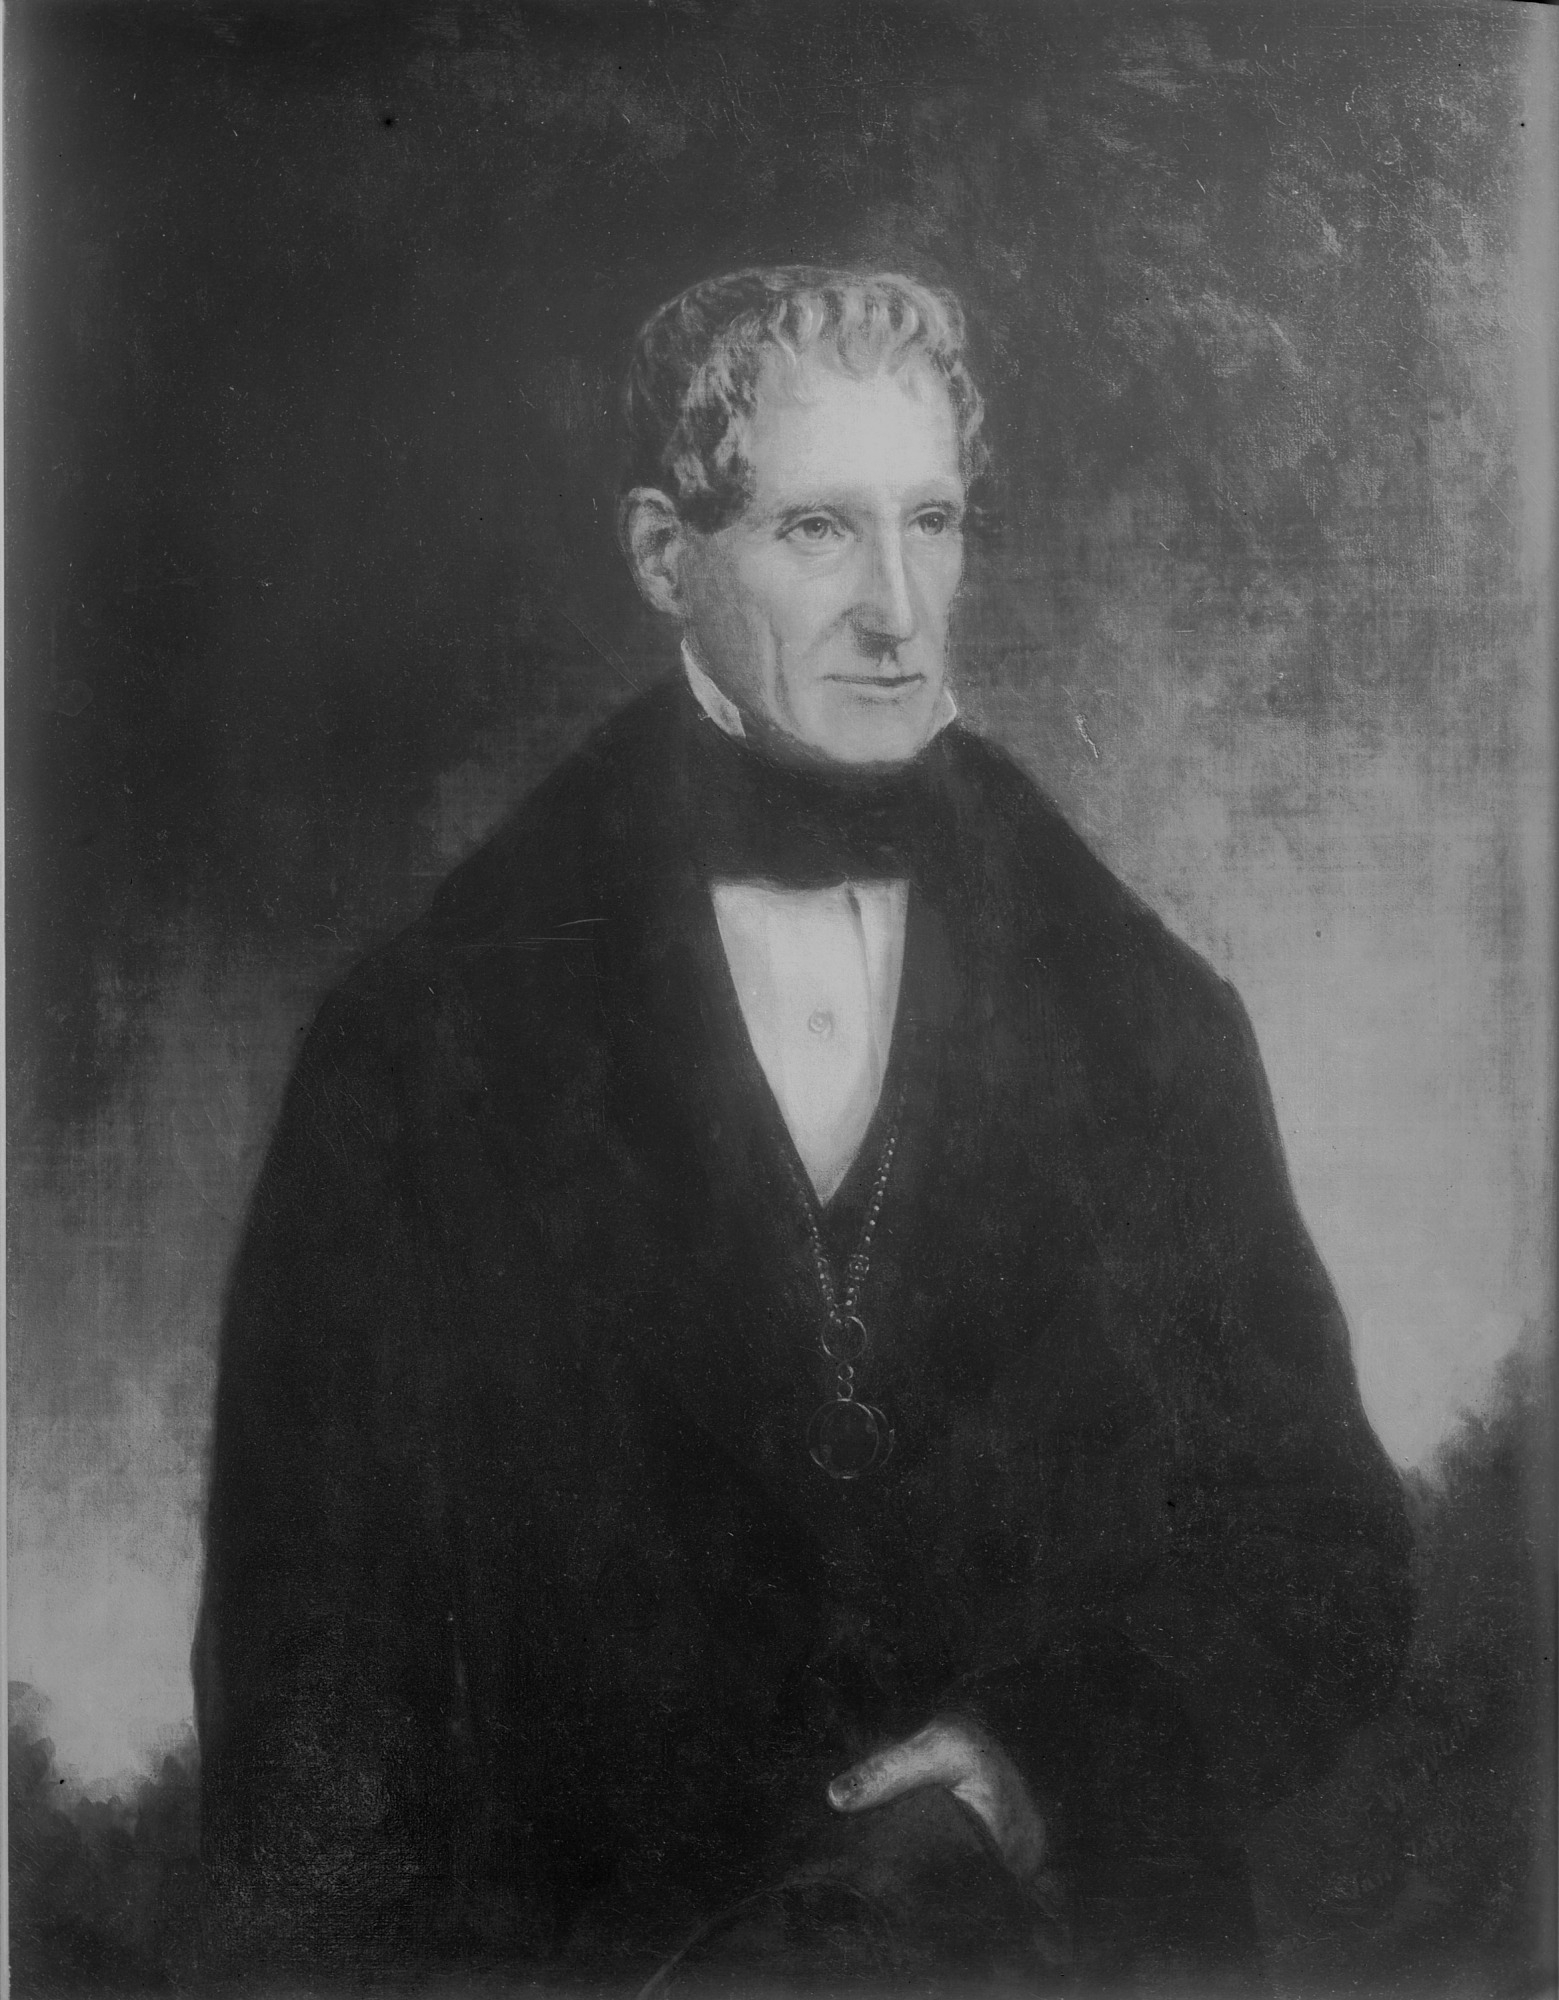 Richard Rush, by Unknown, 1856, Smithsonian Archives - History Div, 21419 or MAH-21419.